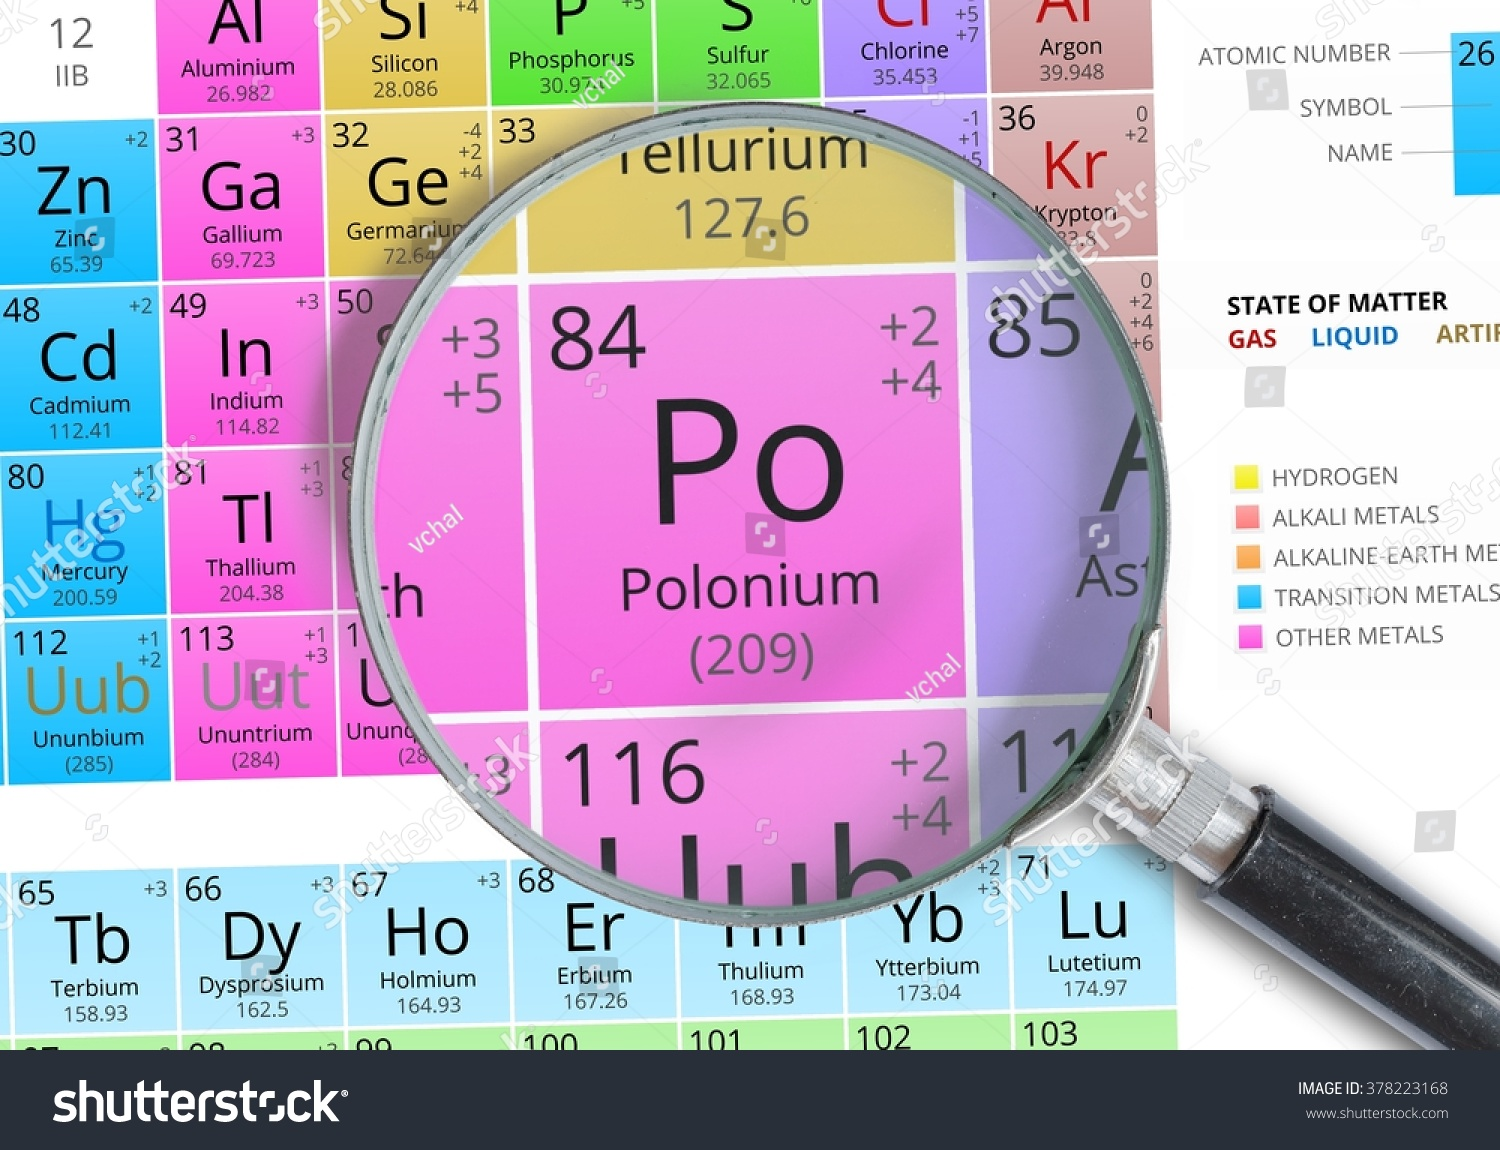 Periodic table polonium image collections periodic table images dmitri mendeleev periodic table facts choice image periodic periodic table polonium choice image periodic table images gamestrikefo Image collections